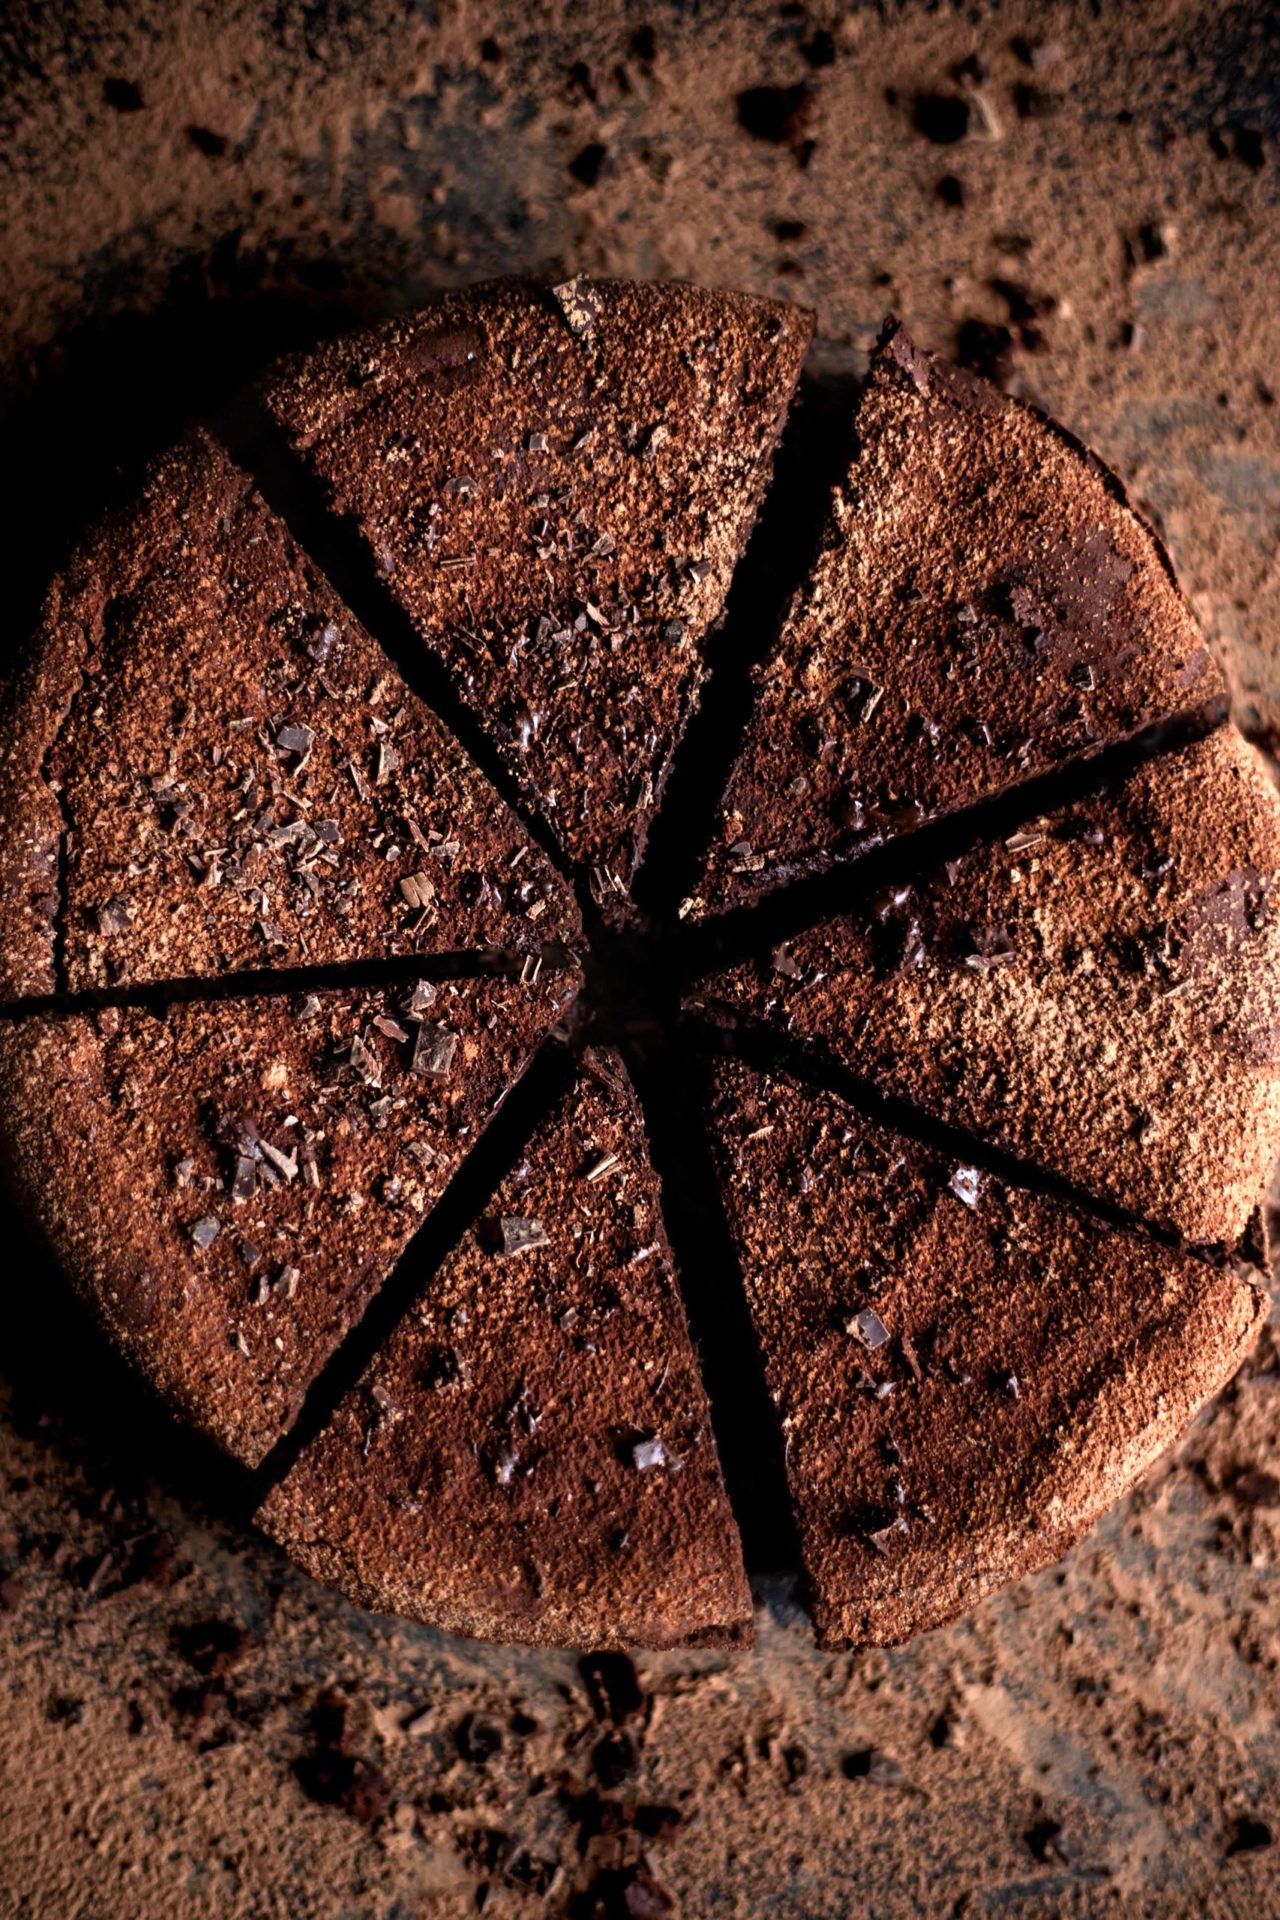 This Flourless Chocolate Cake is super chocolaty, incredibly rich, luxurious, decadent, moist, fudgy and the best part naturally gluten-free!